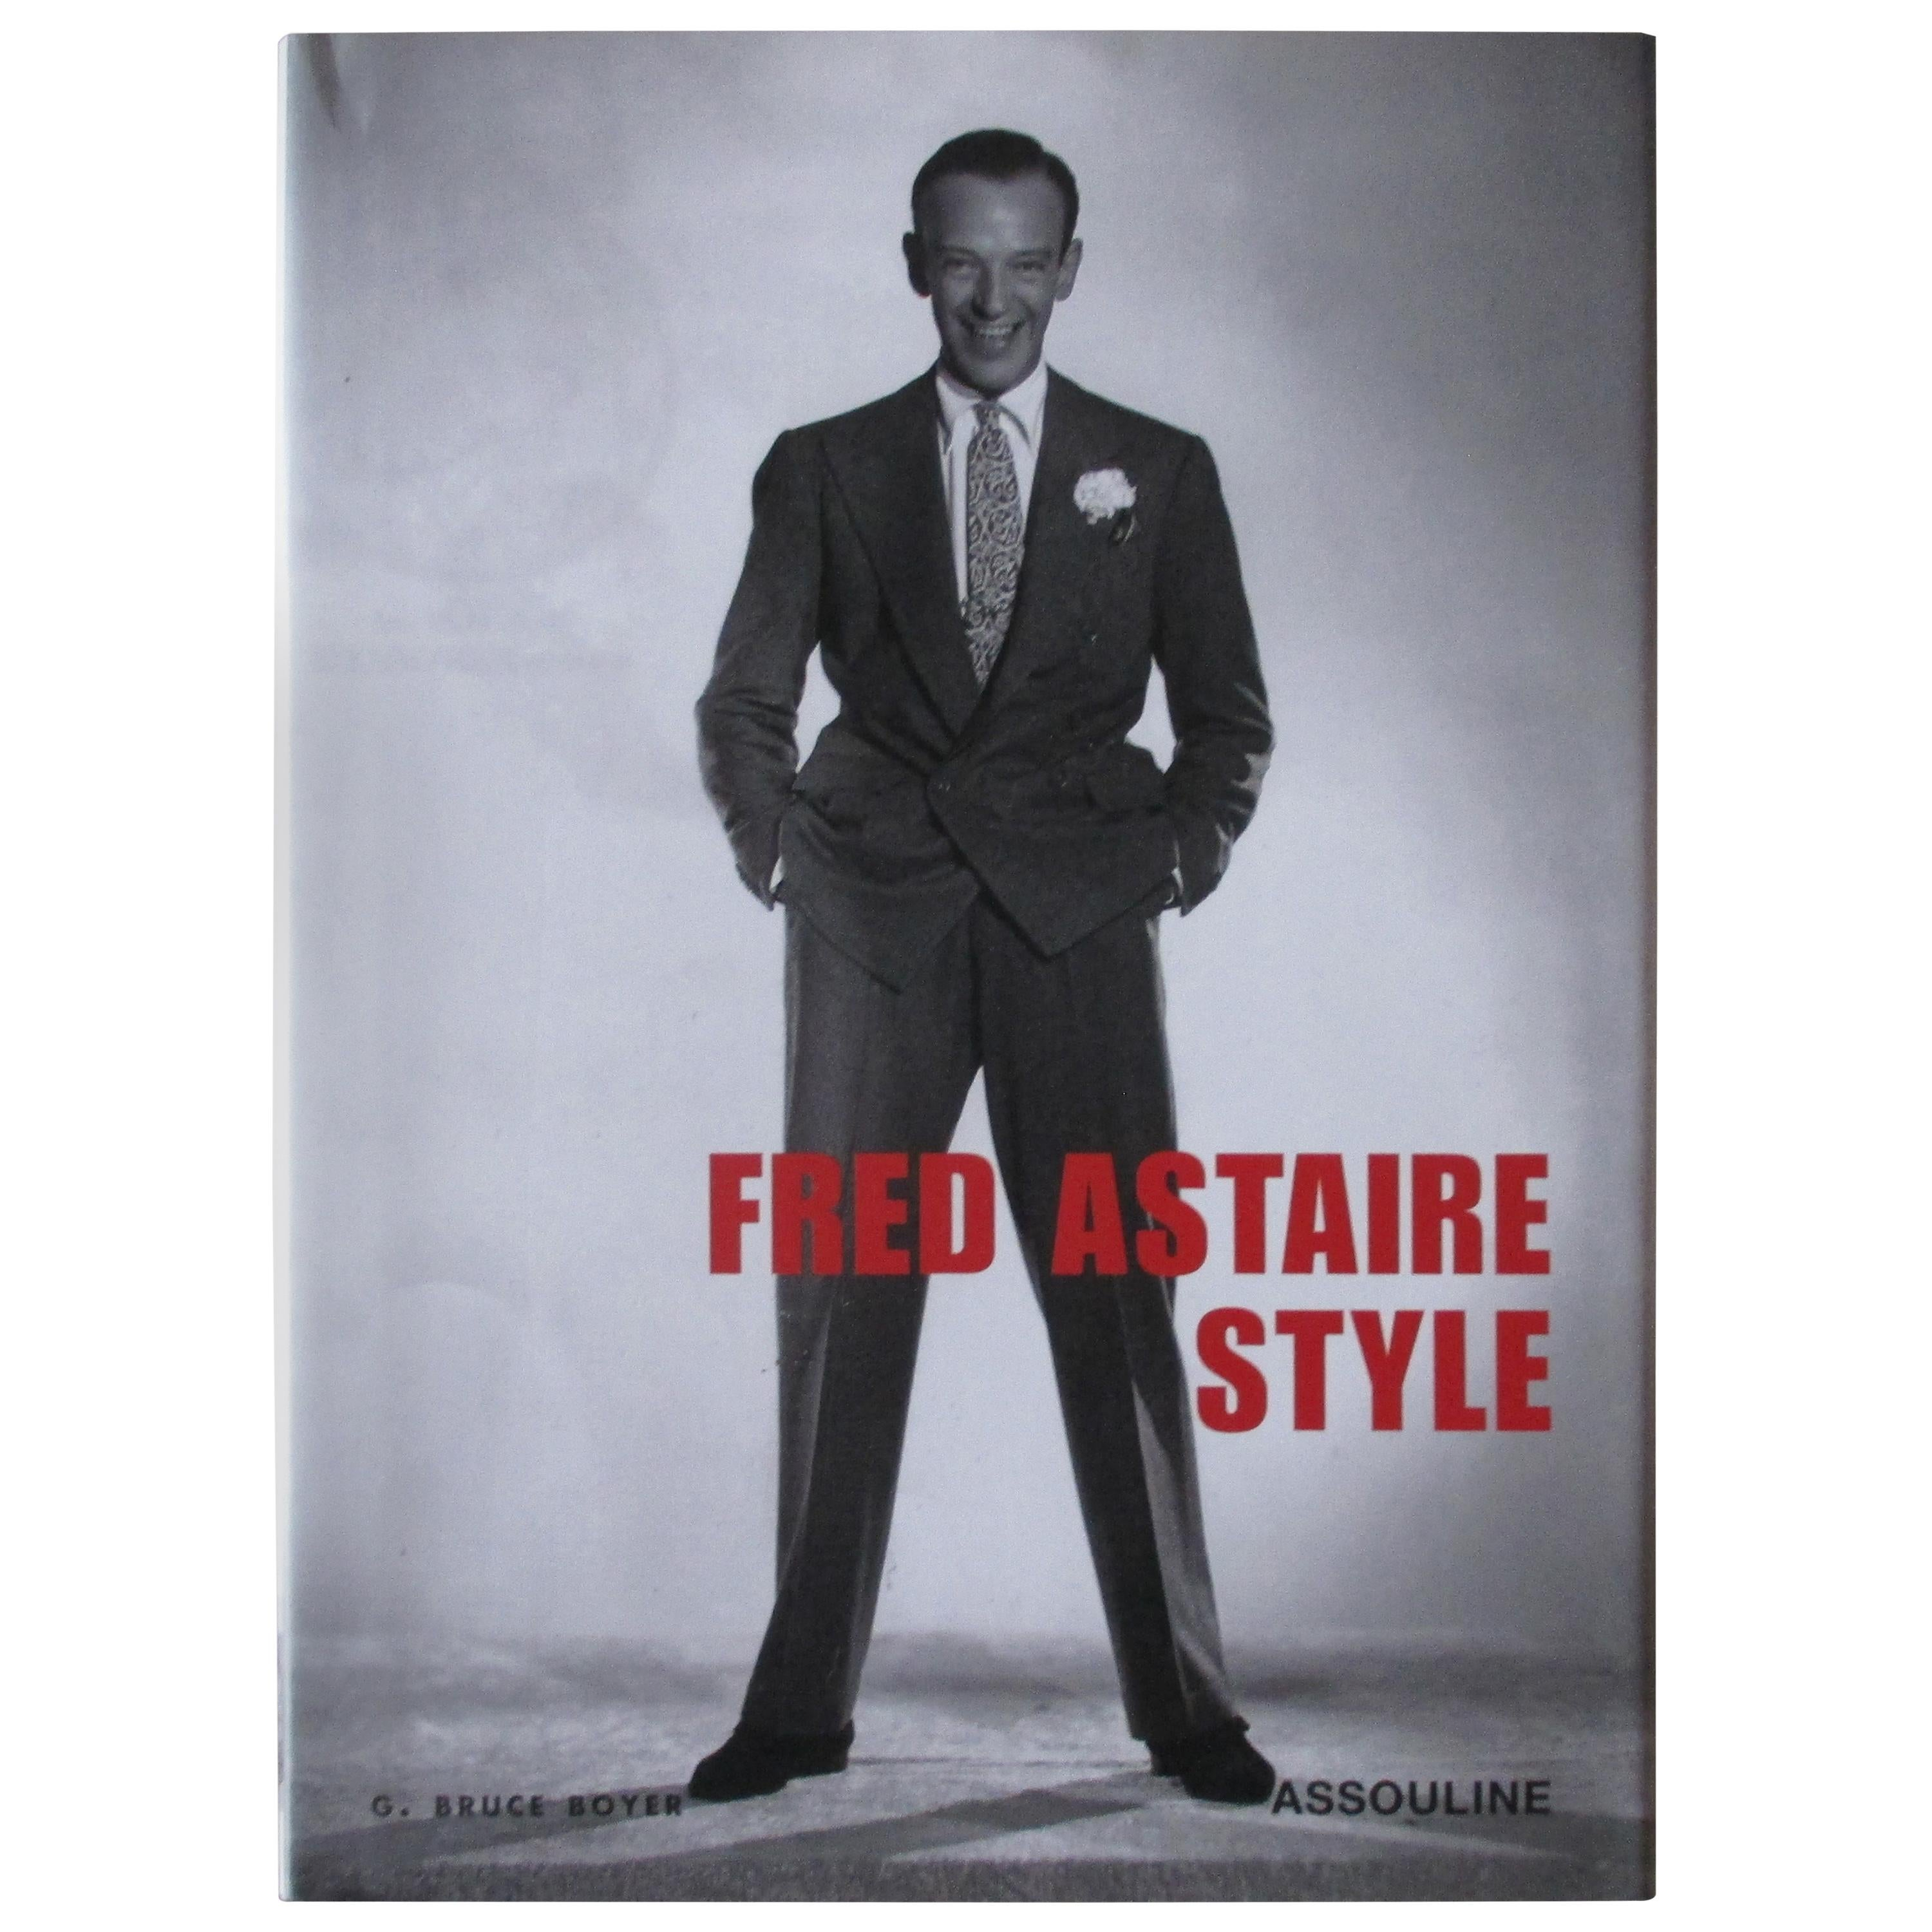 Vintage Fred Astaire Style Book by Aussoline